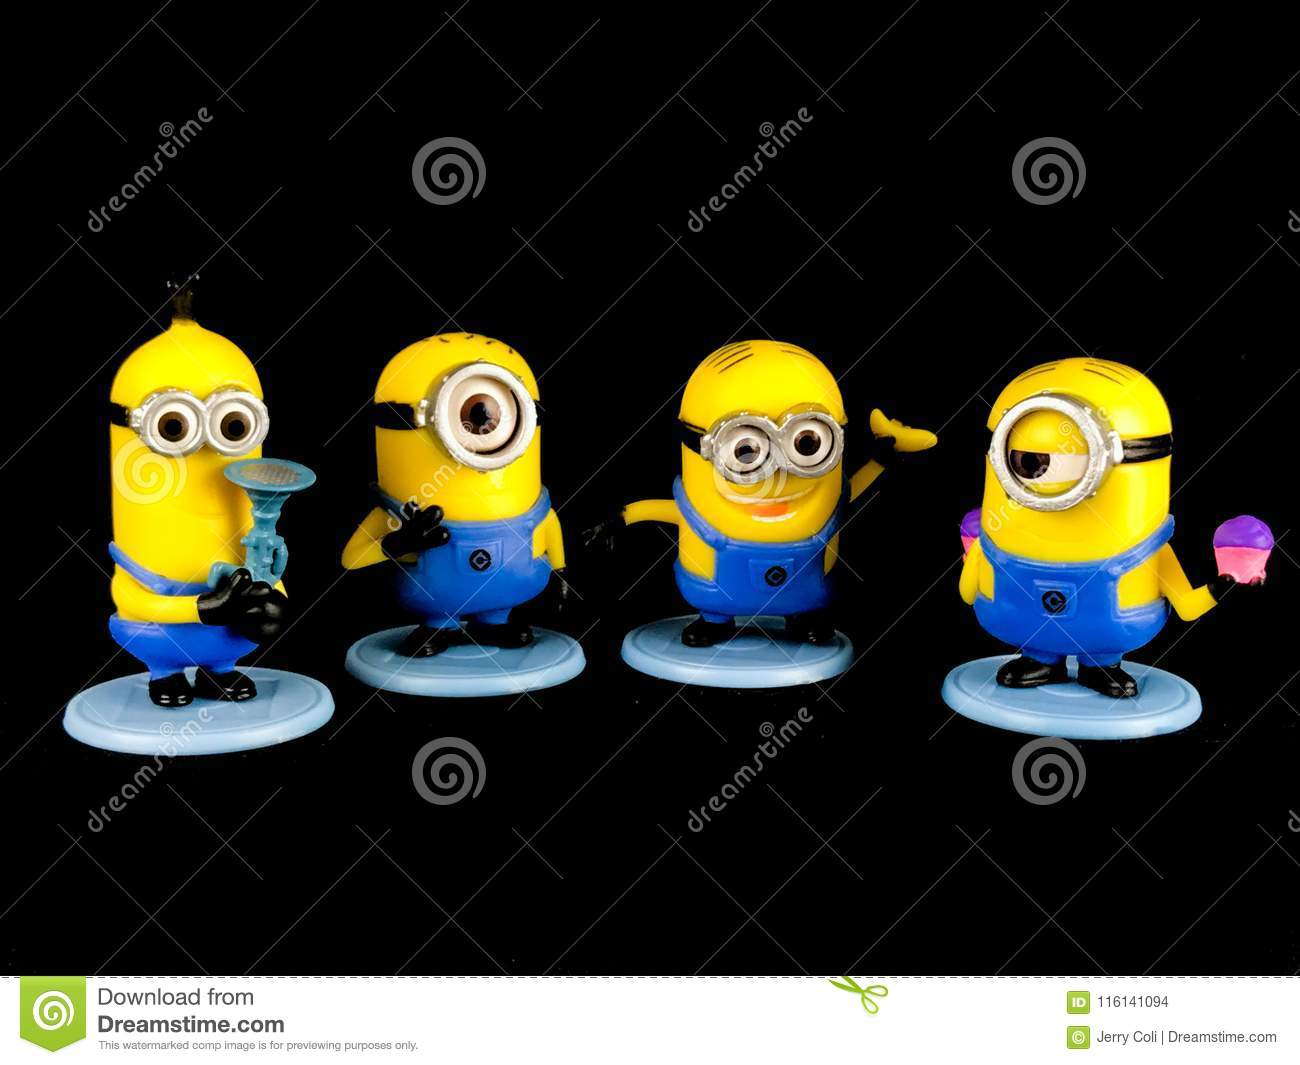 The Minions for Despicable Me Franchise